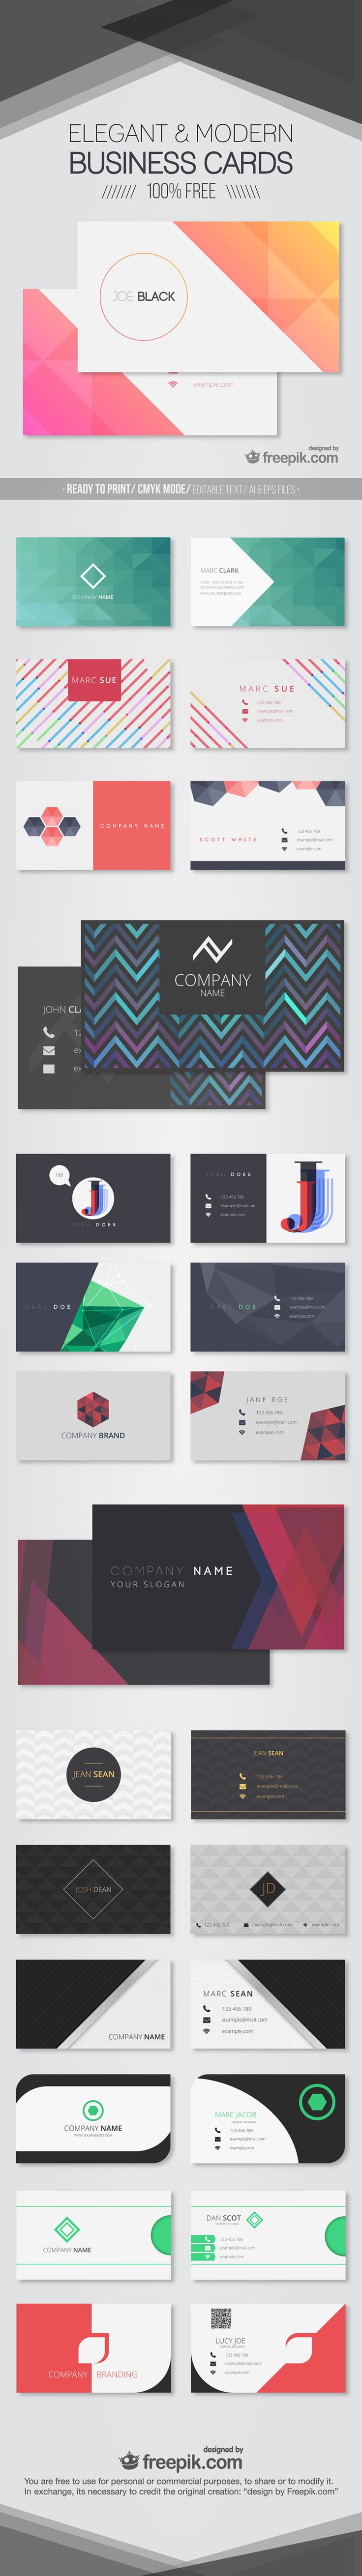 Free Elegant & Modern Business Card Template